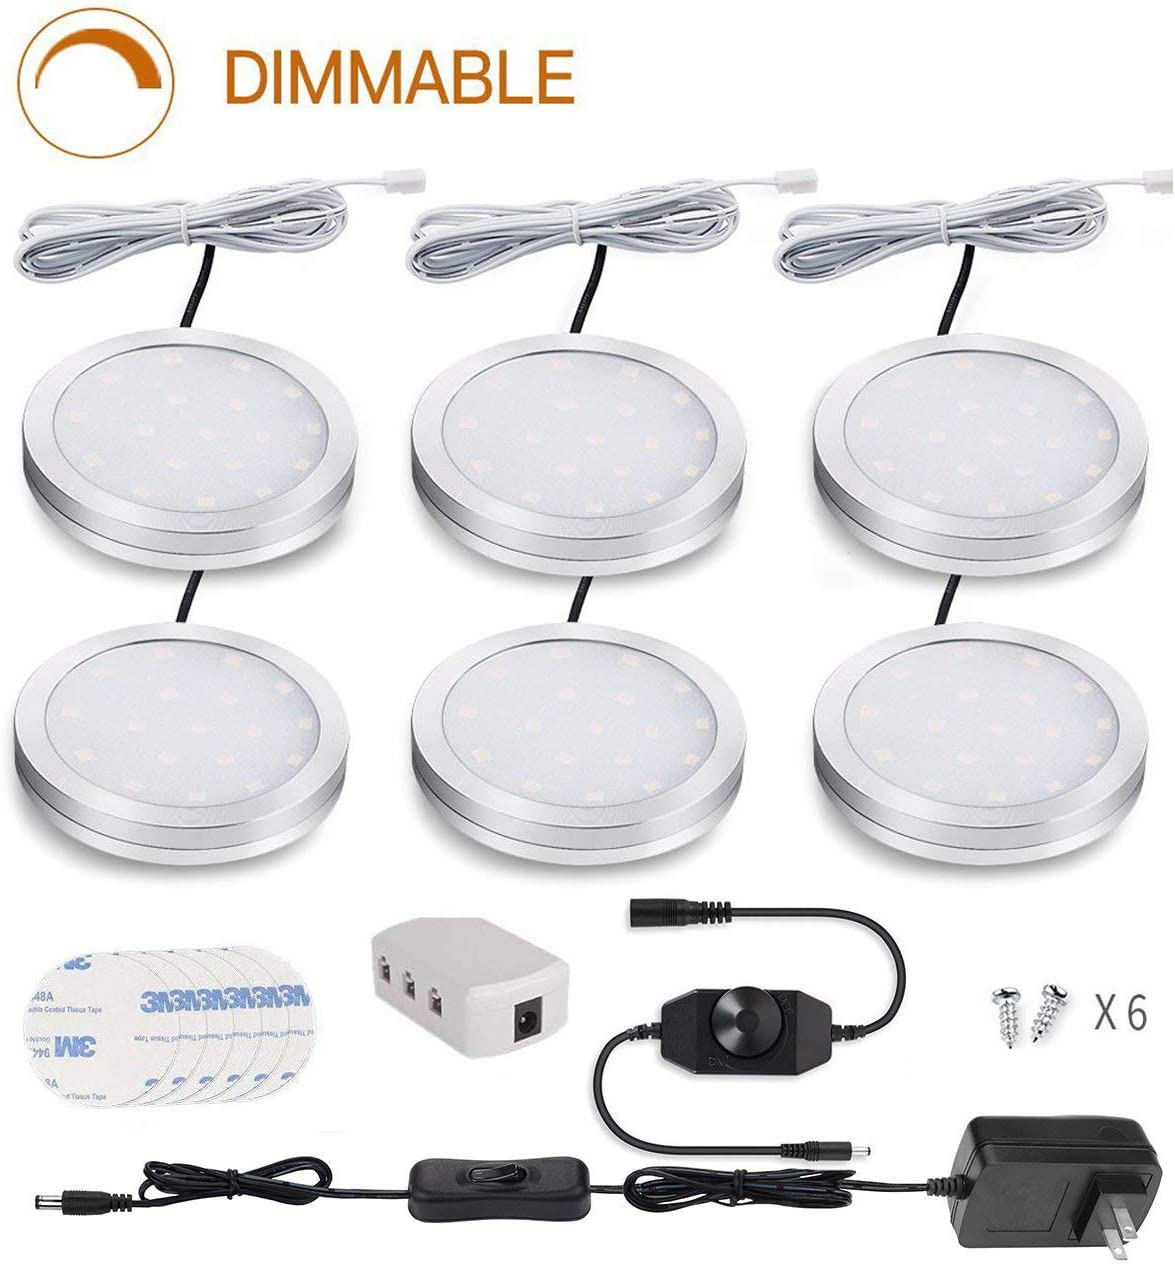 Cefrank LED Puck Lights, Set of 6, White Dimmable Under Cabinet Lighting, Led Under Counter Lighting for Kitchen Closet, Bookcase, Shelf, All Accessories Included 6Pack,White